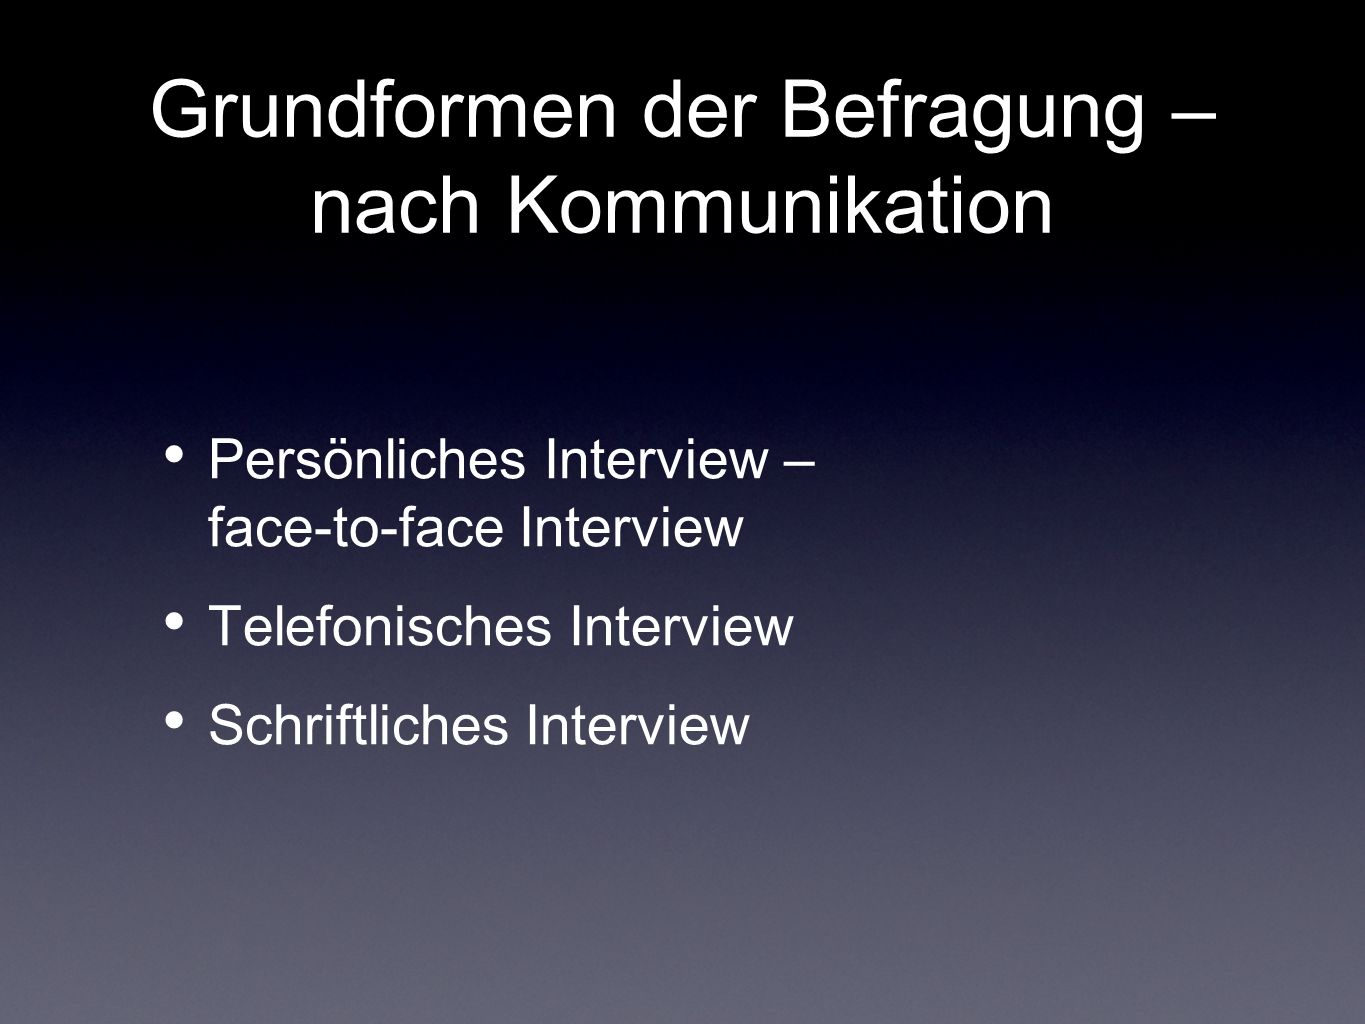 Grundformen der Befragung – nach Kommunikation Persönliches Interview – face-to-face Interview Telefonisches Interview Schriftliches Interview